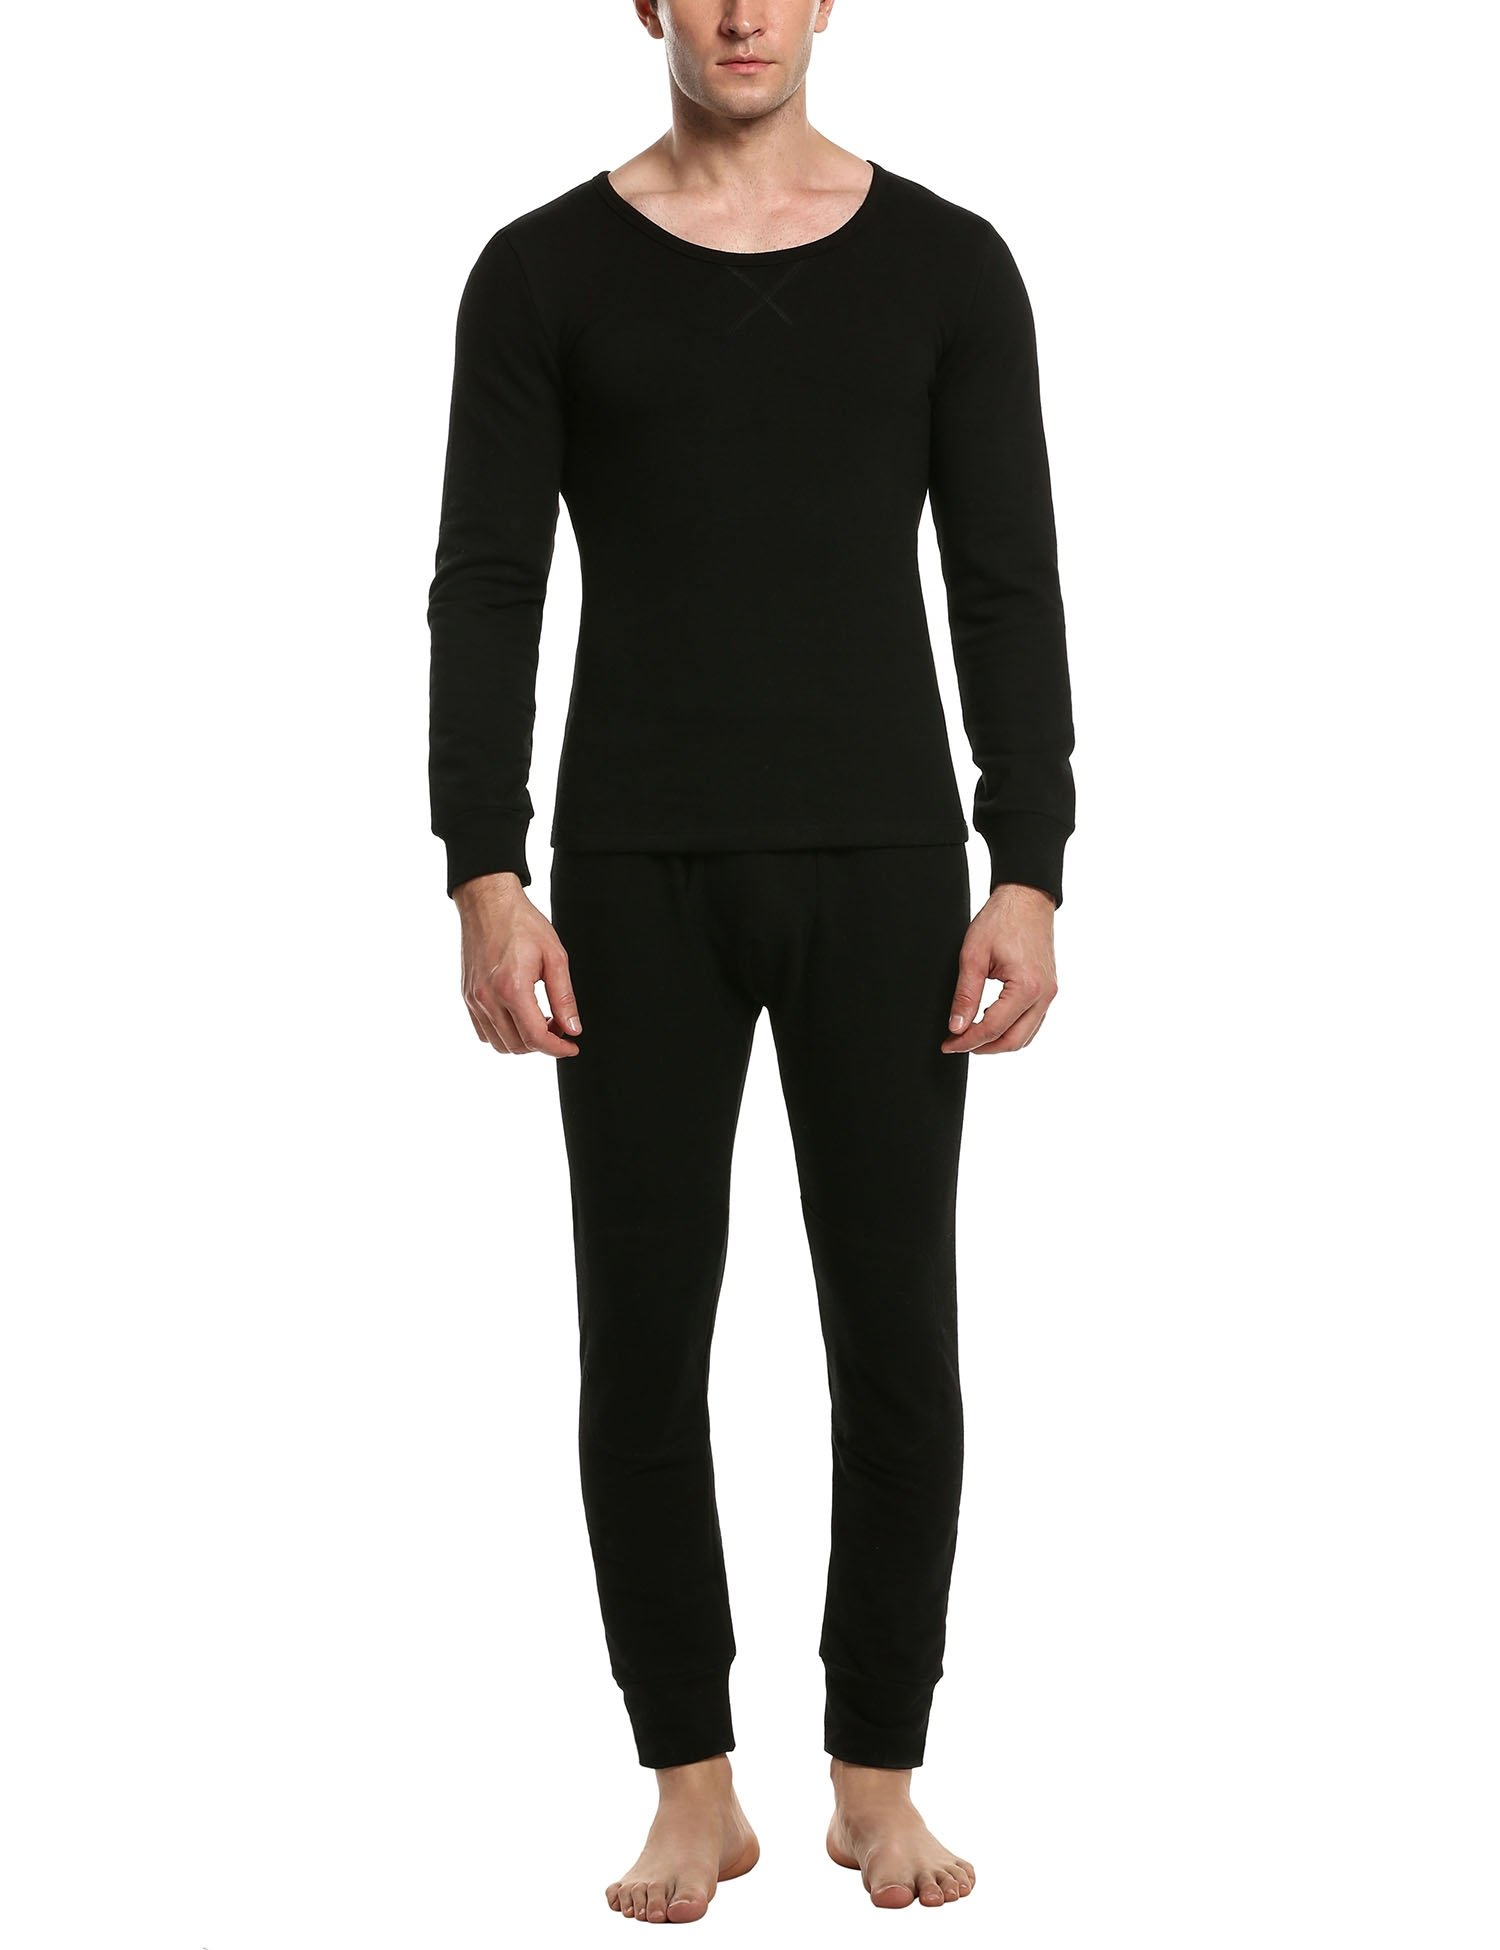 HOTOUCH Men's Thermal 2pc Set Long John Underwear for Fleece Lined Top and Pants Black XXL